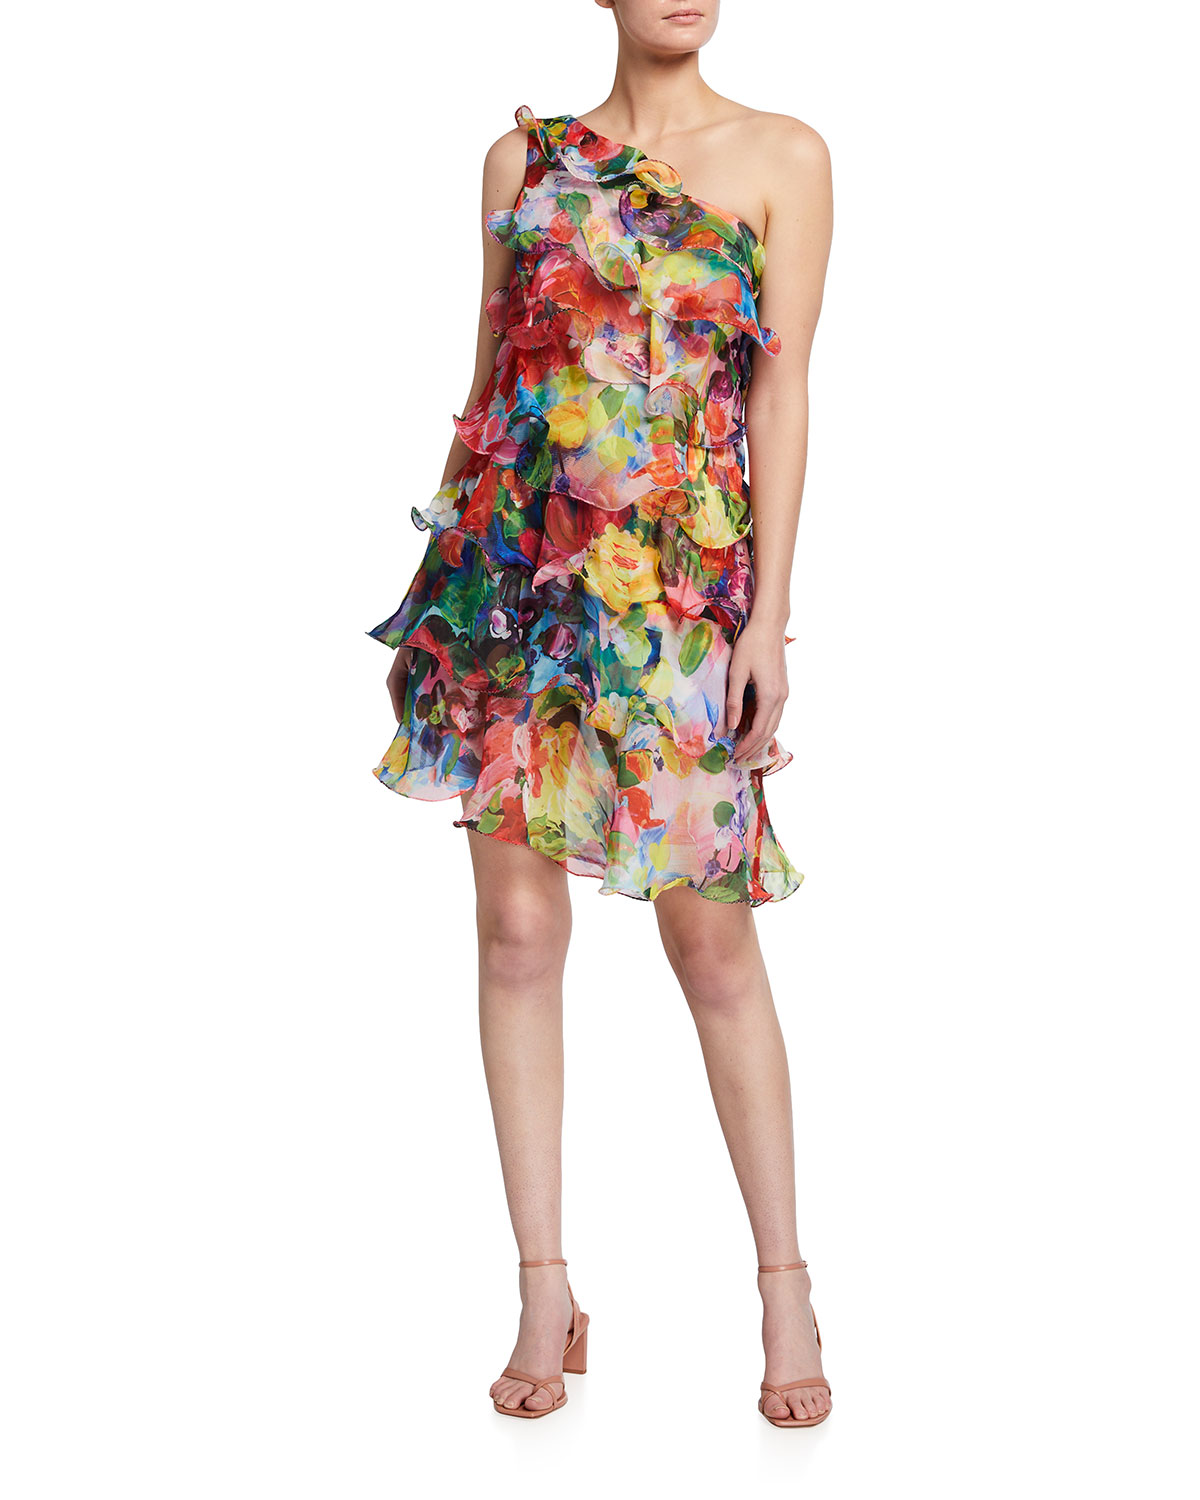 Marchesa Notte One Shoulder Asymmetrical Tiered Printed Chiffon Mini Cocktail Dress In Red Multi